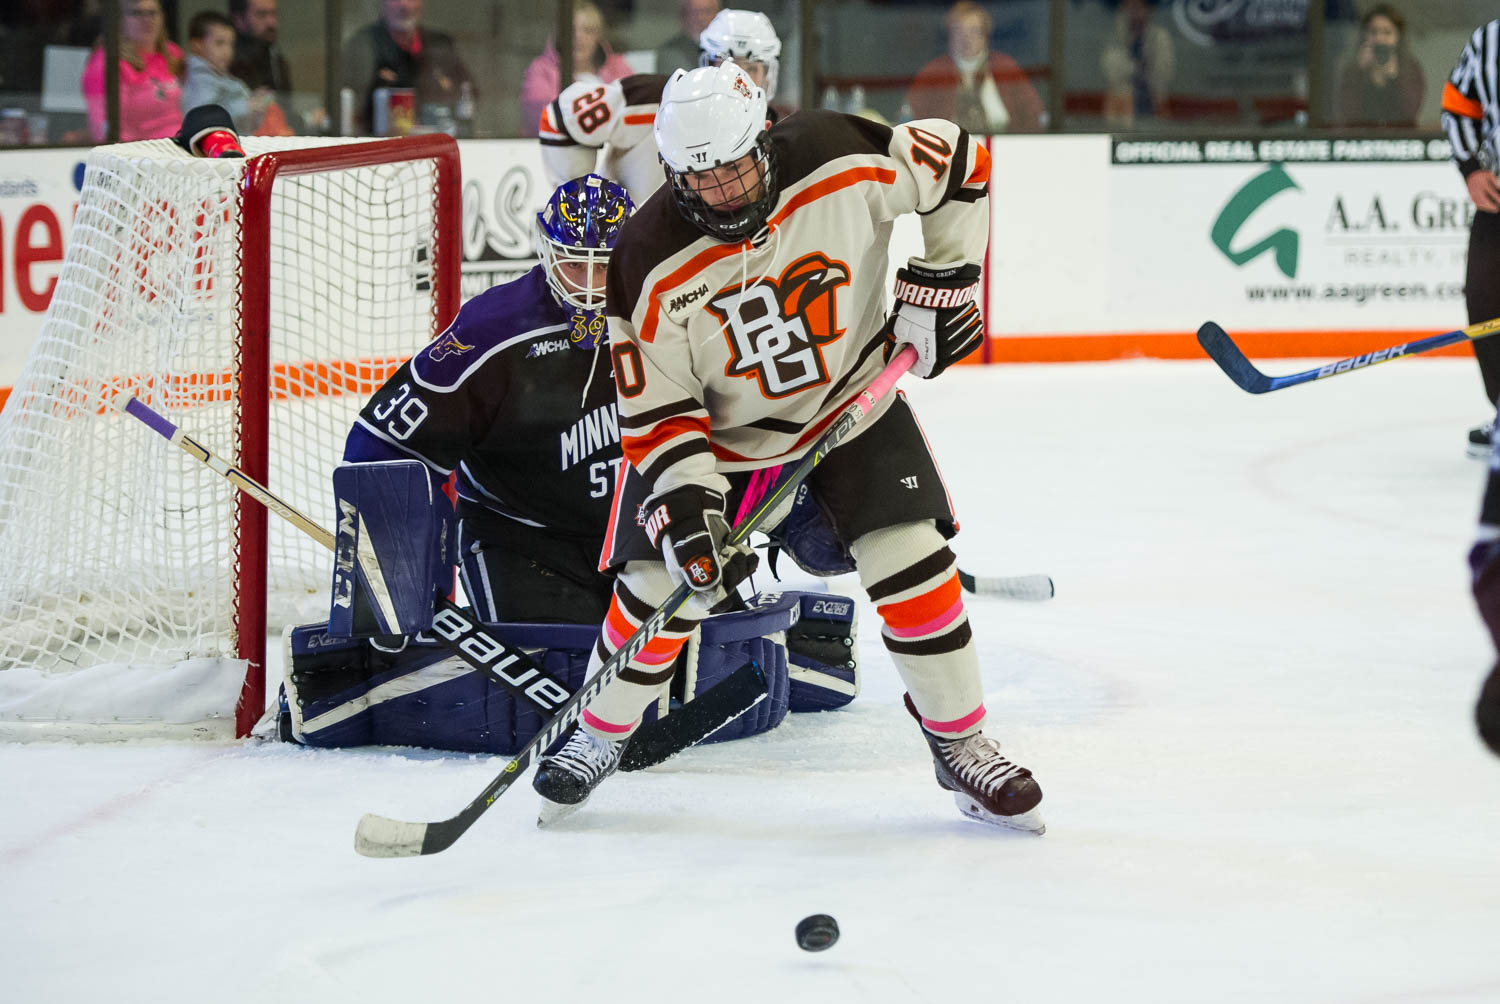 Falcons earn weekend split with 5-2 win over Mavs